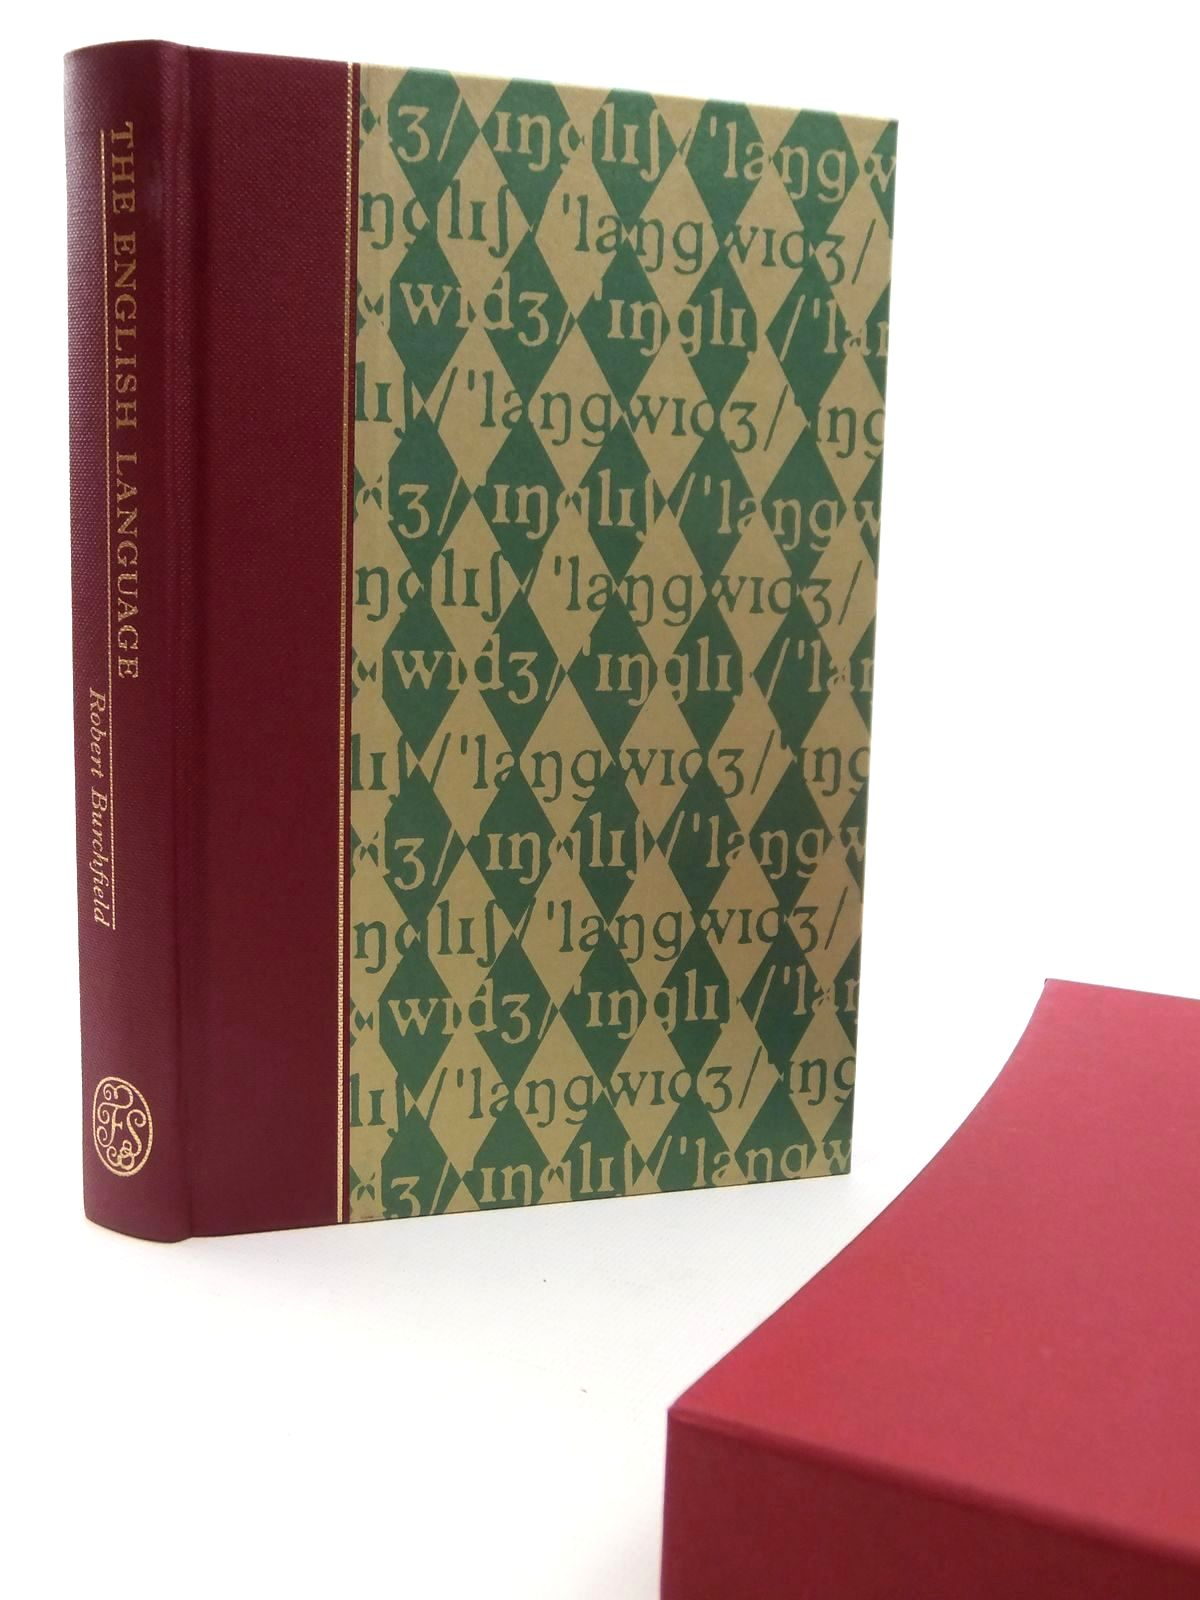 Photo of THE ENGLISH LANGUAGE written by Burchfield, Robert<br />McCrum, Robert<br />Simpson, John published by Folio Society (STOCK CODE: 2122516)  for sale by Stella & Rose's Books